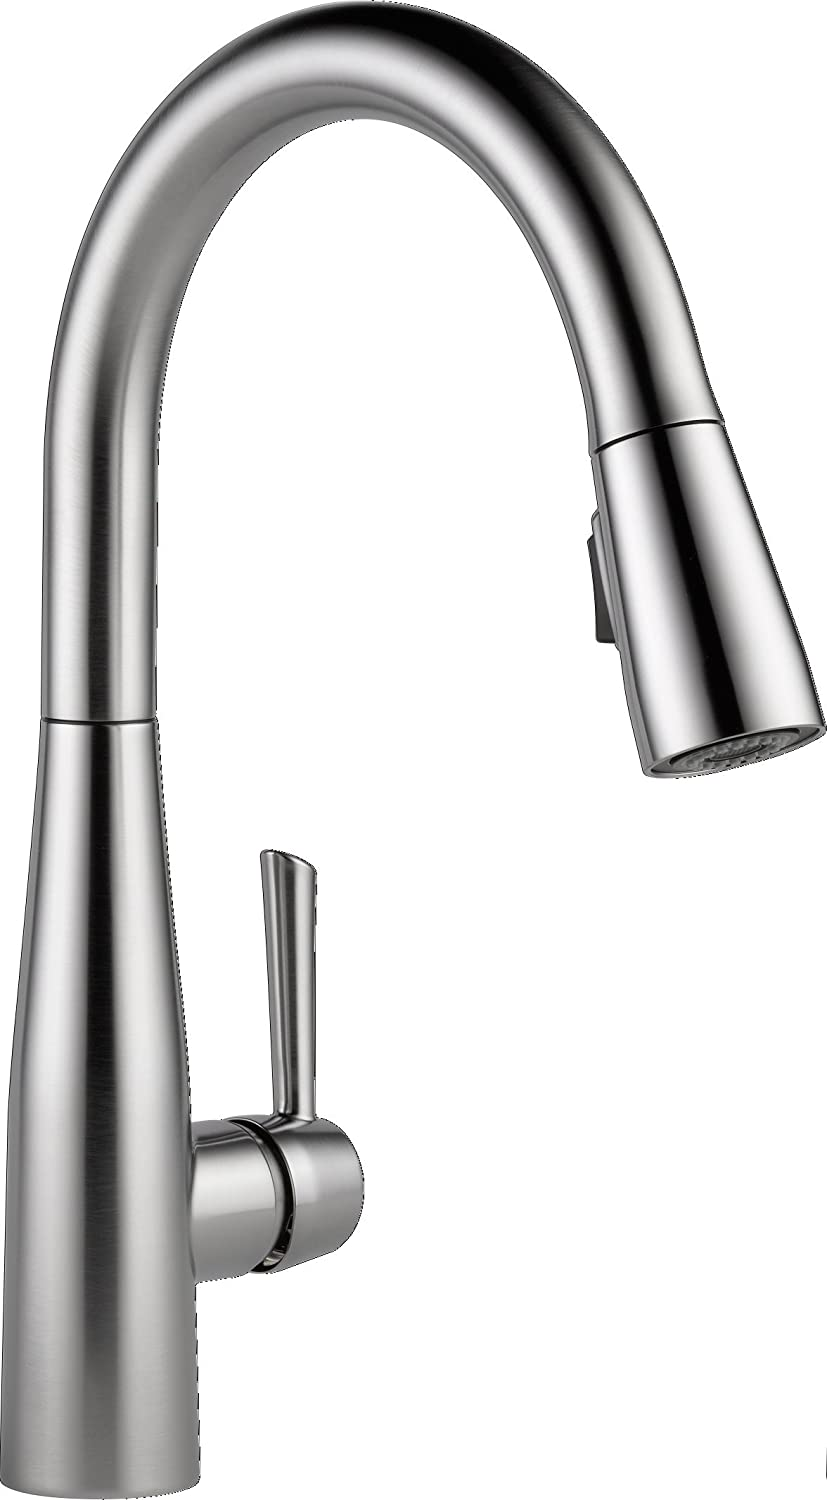 Leland Delta Kitchen Faucet Delta Faucet 9113 Ar Dst Essa Single Handle Pull Down Kitchen